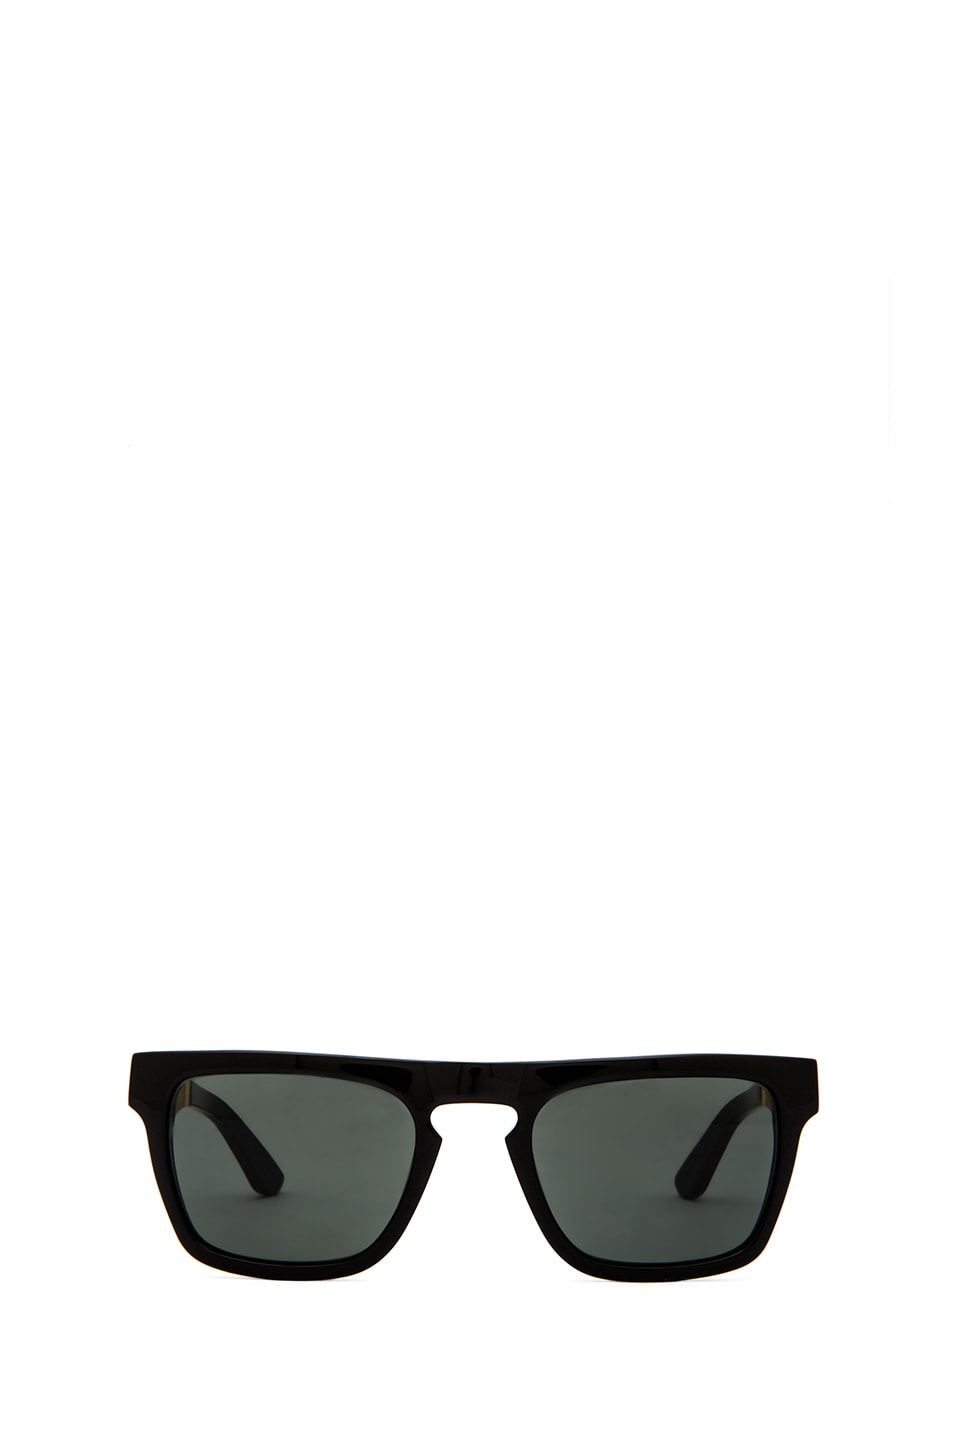 Stussy Louie Sunglasses in Black Gold/Black